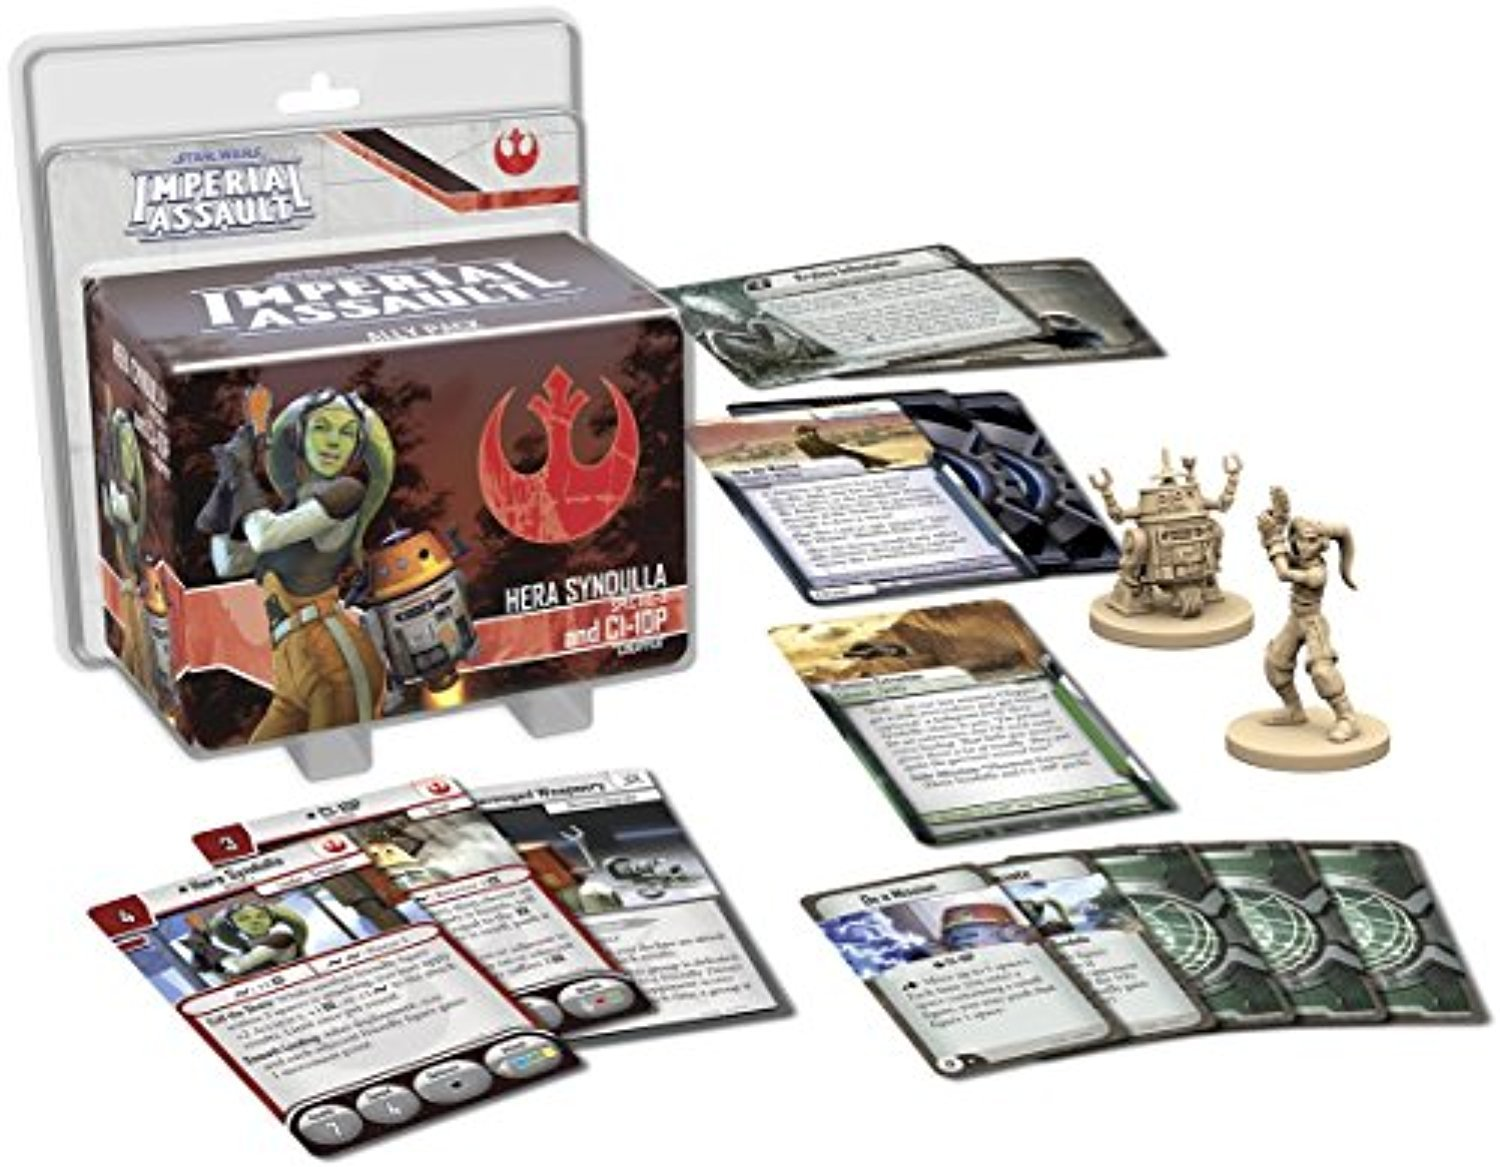 Imperial Assault Hera Syndulla and C1-10P